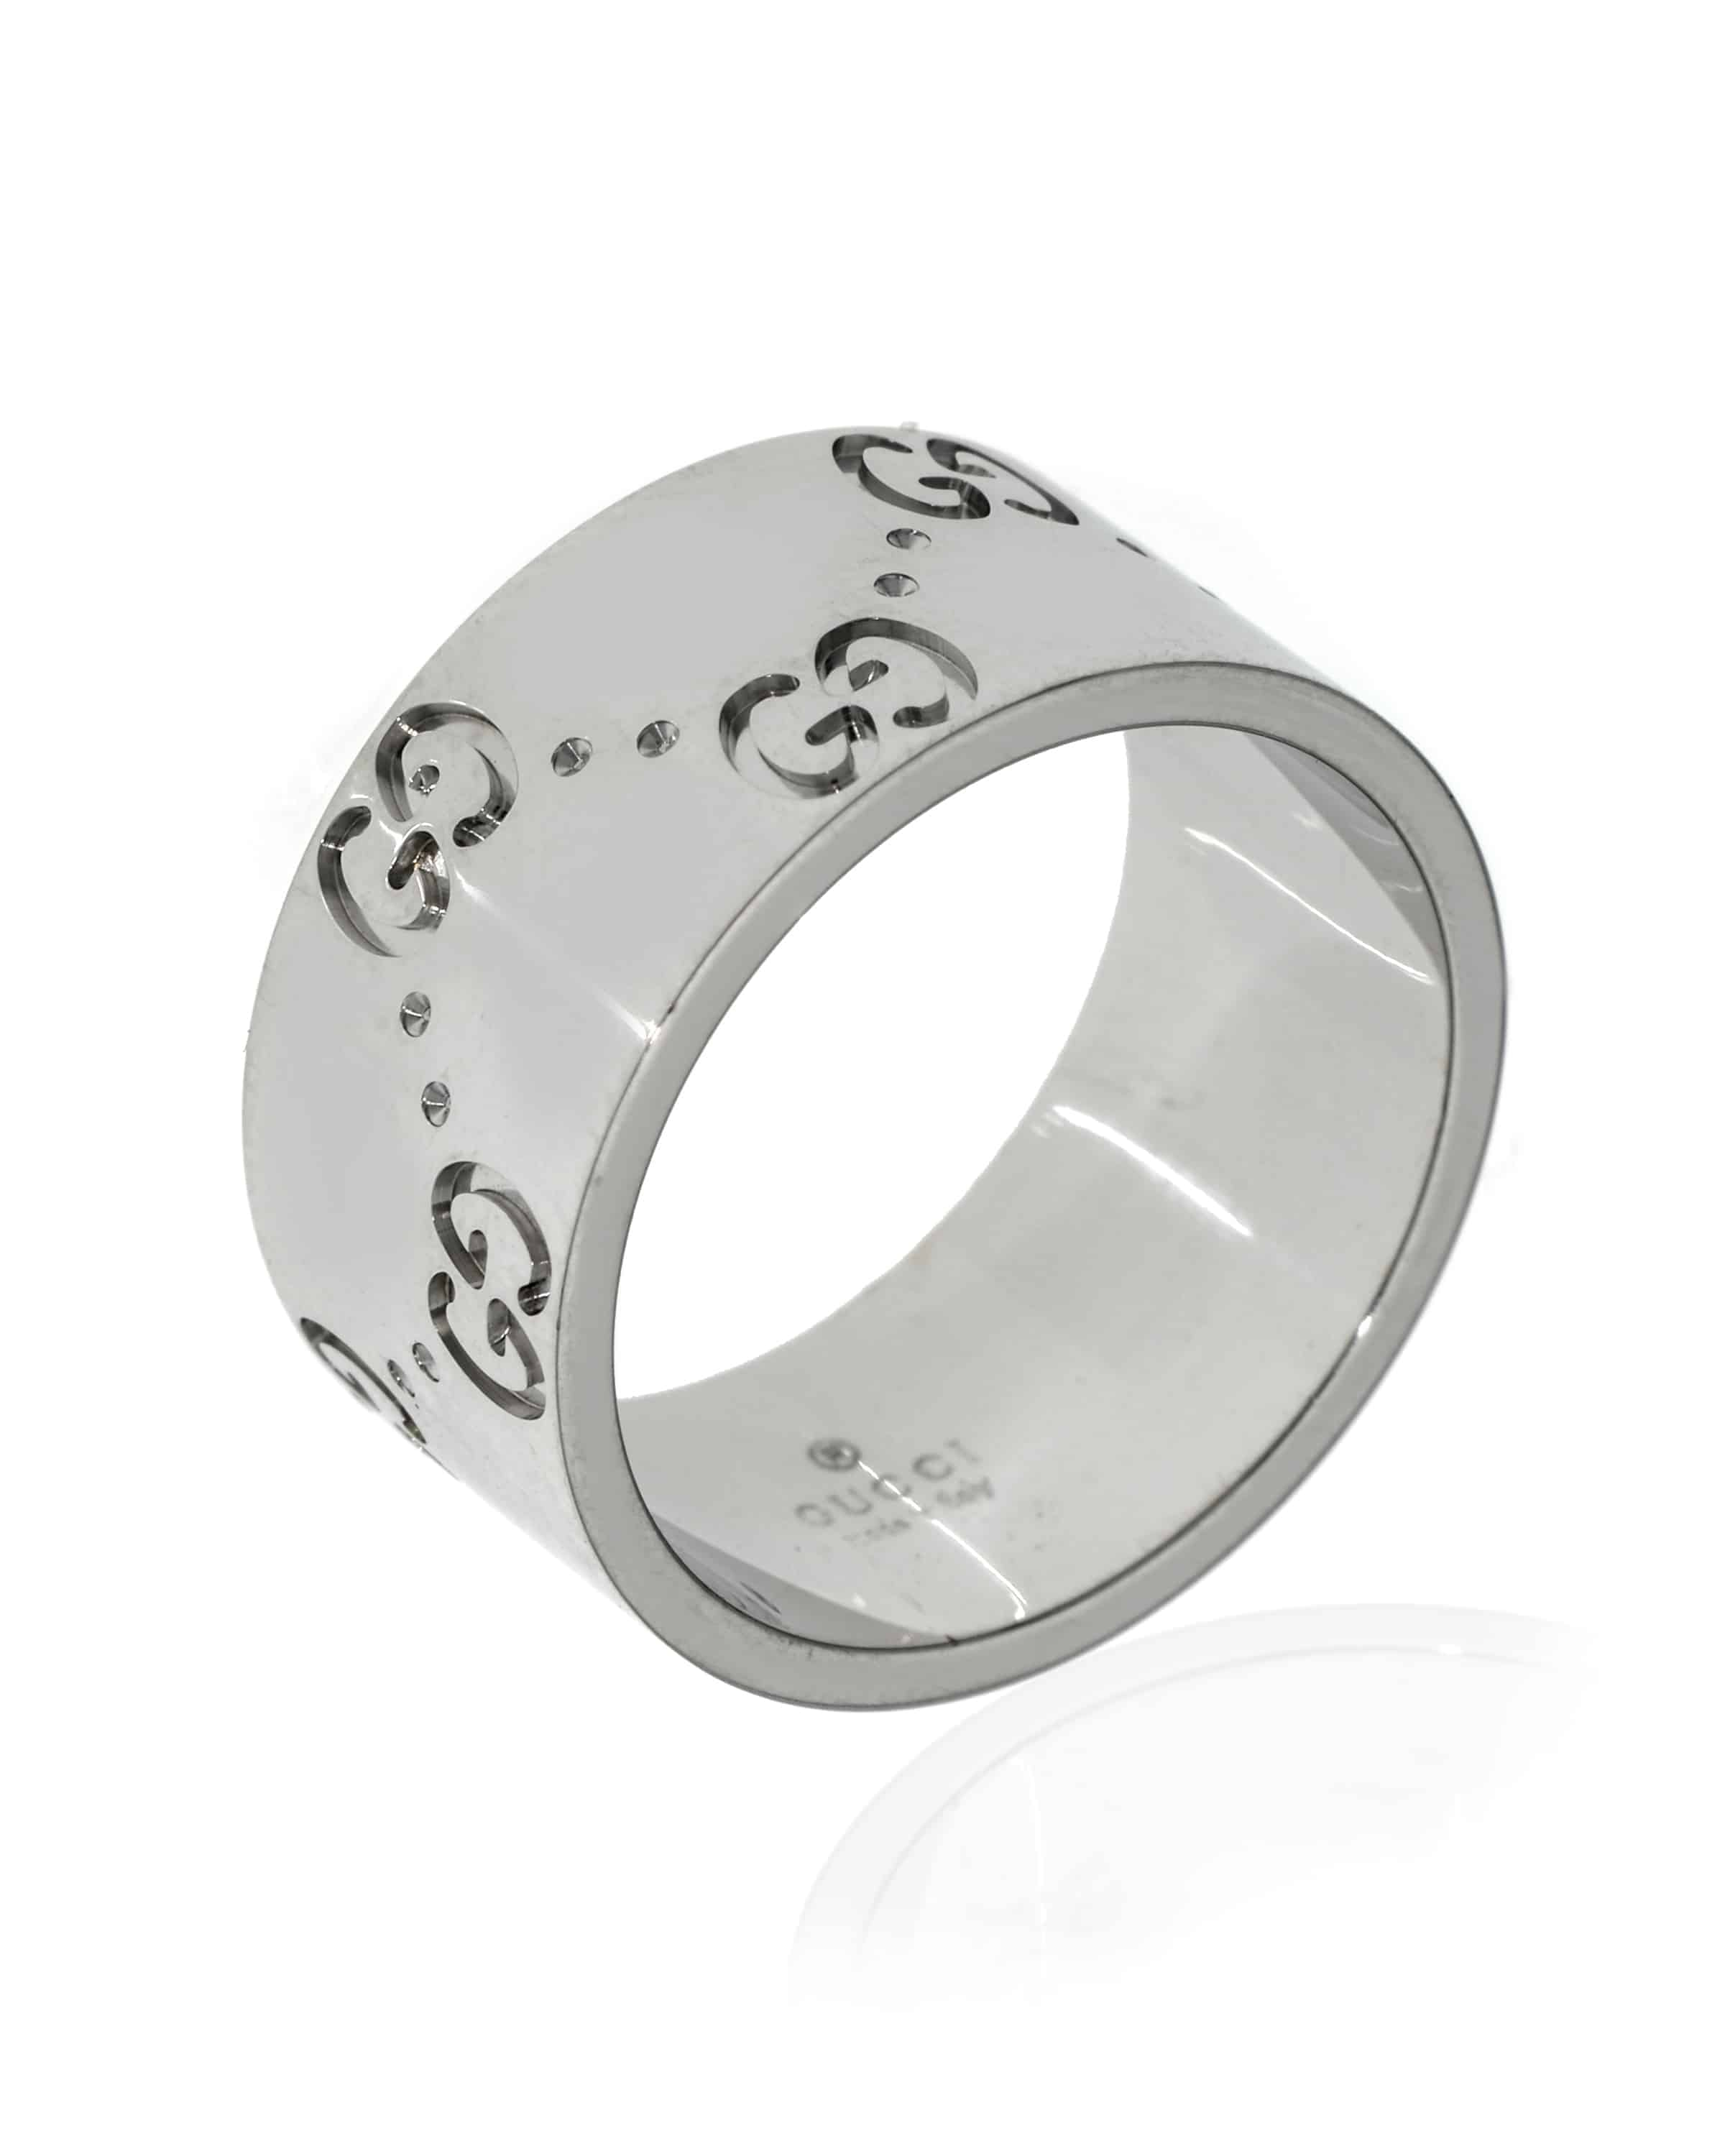 Gucci Icon 18k White Gold Band Ring Size 5.5. 7323809850900